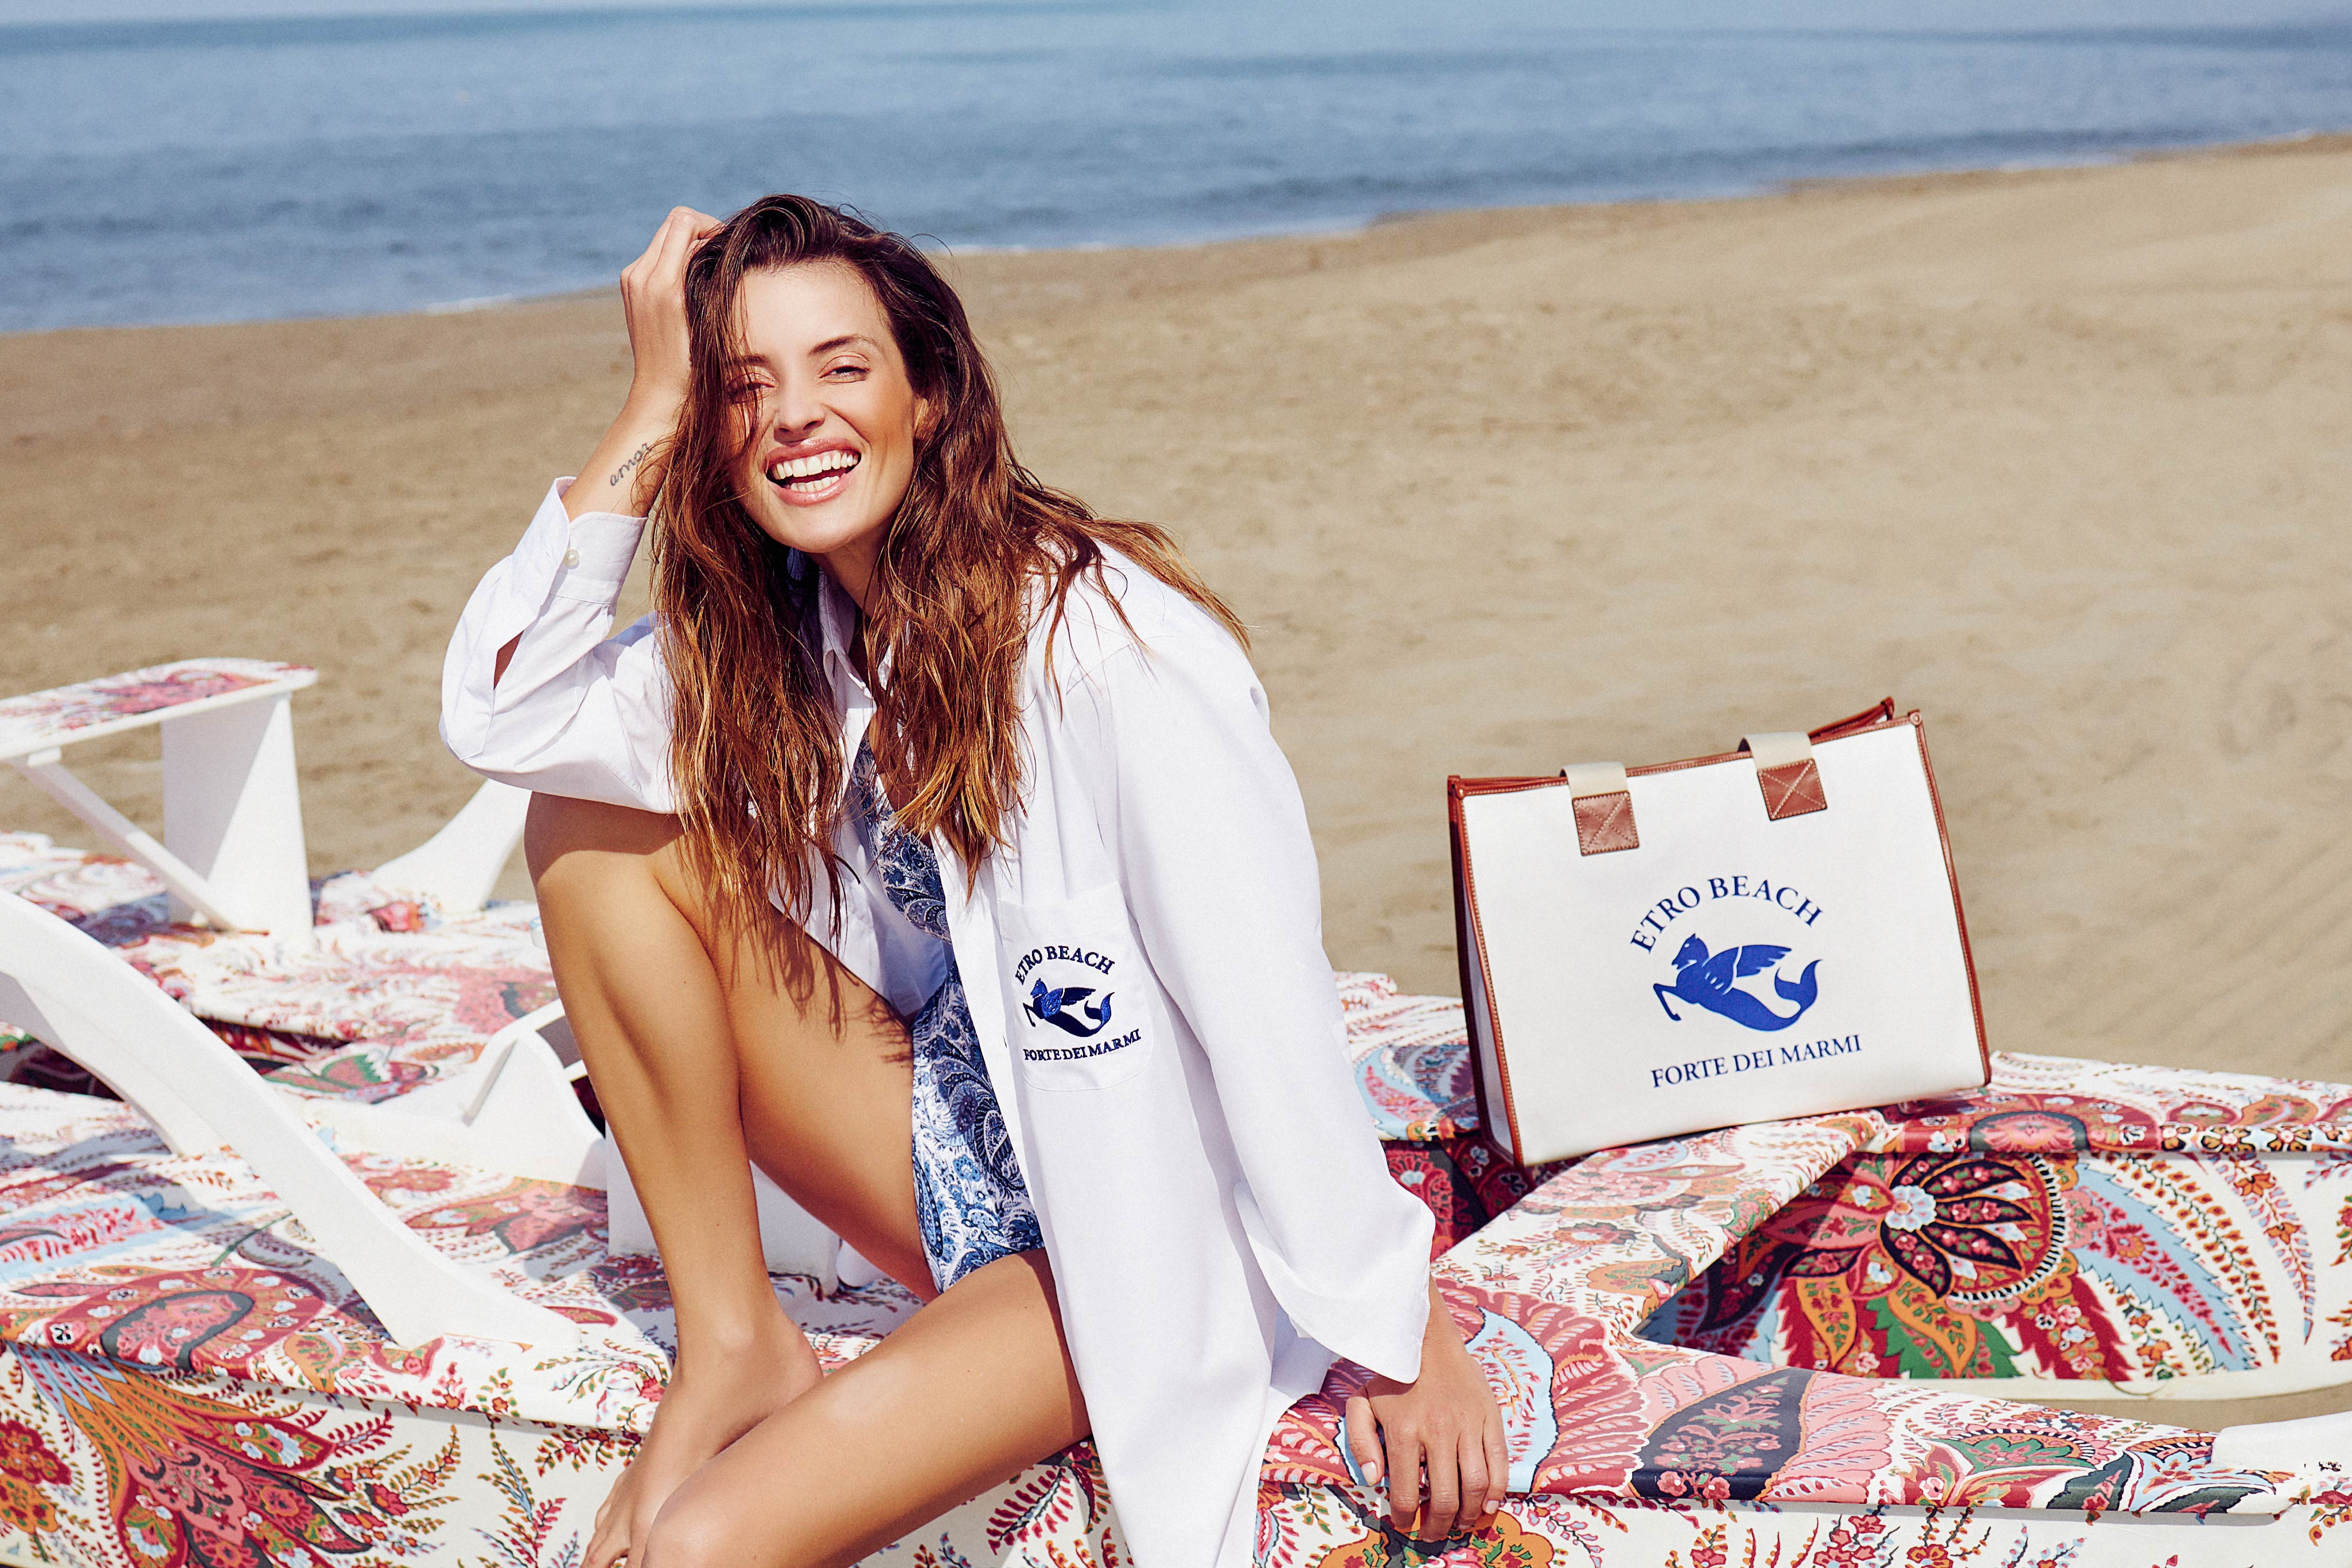 Etro capsule collection for the Forte dei Marmi pop-up store